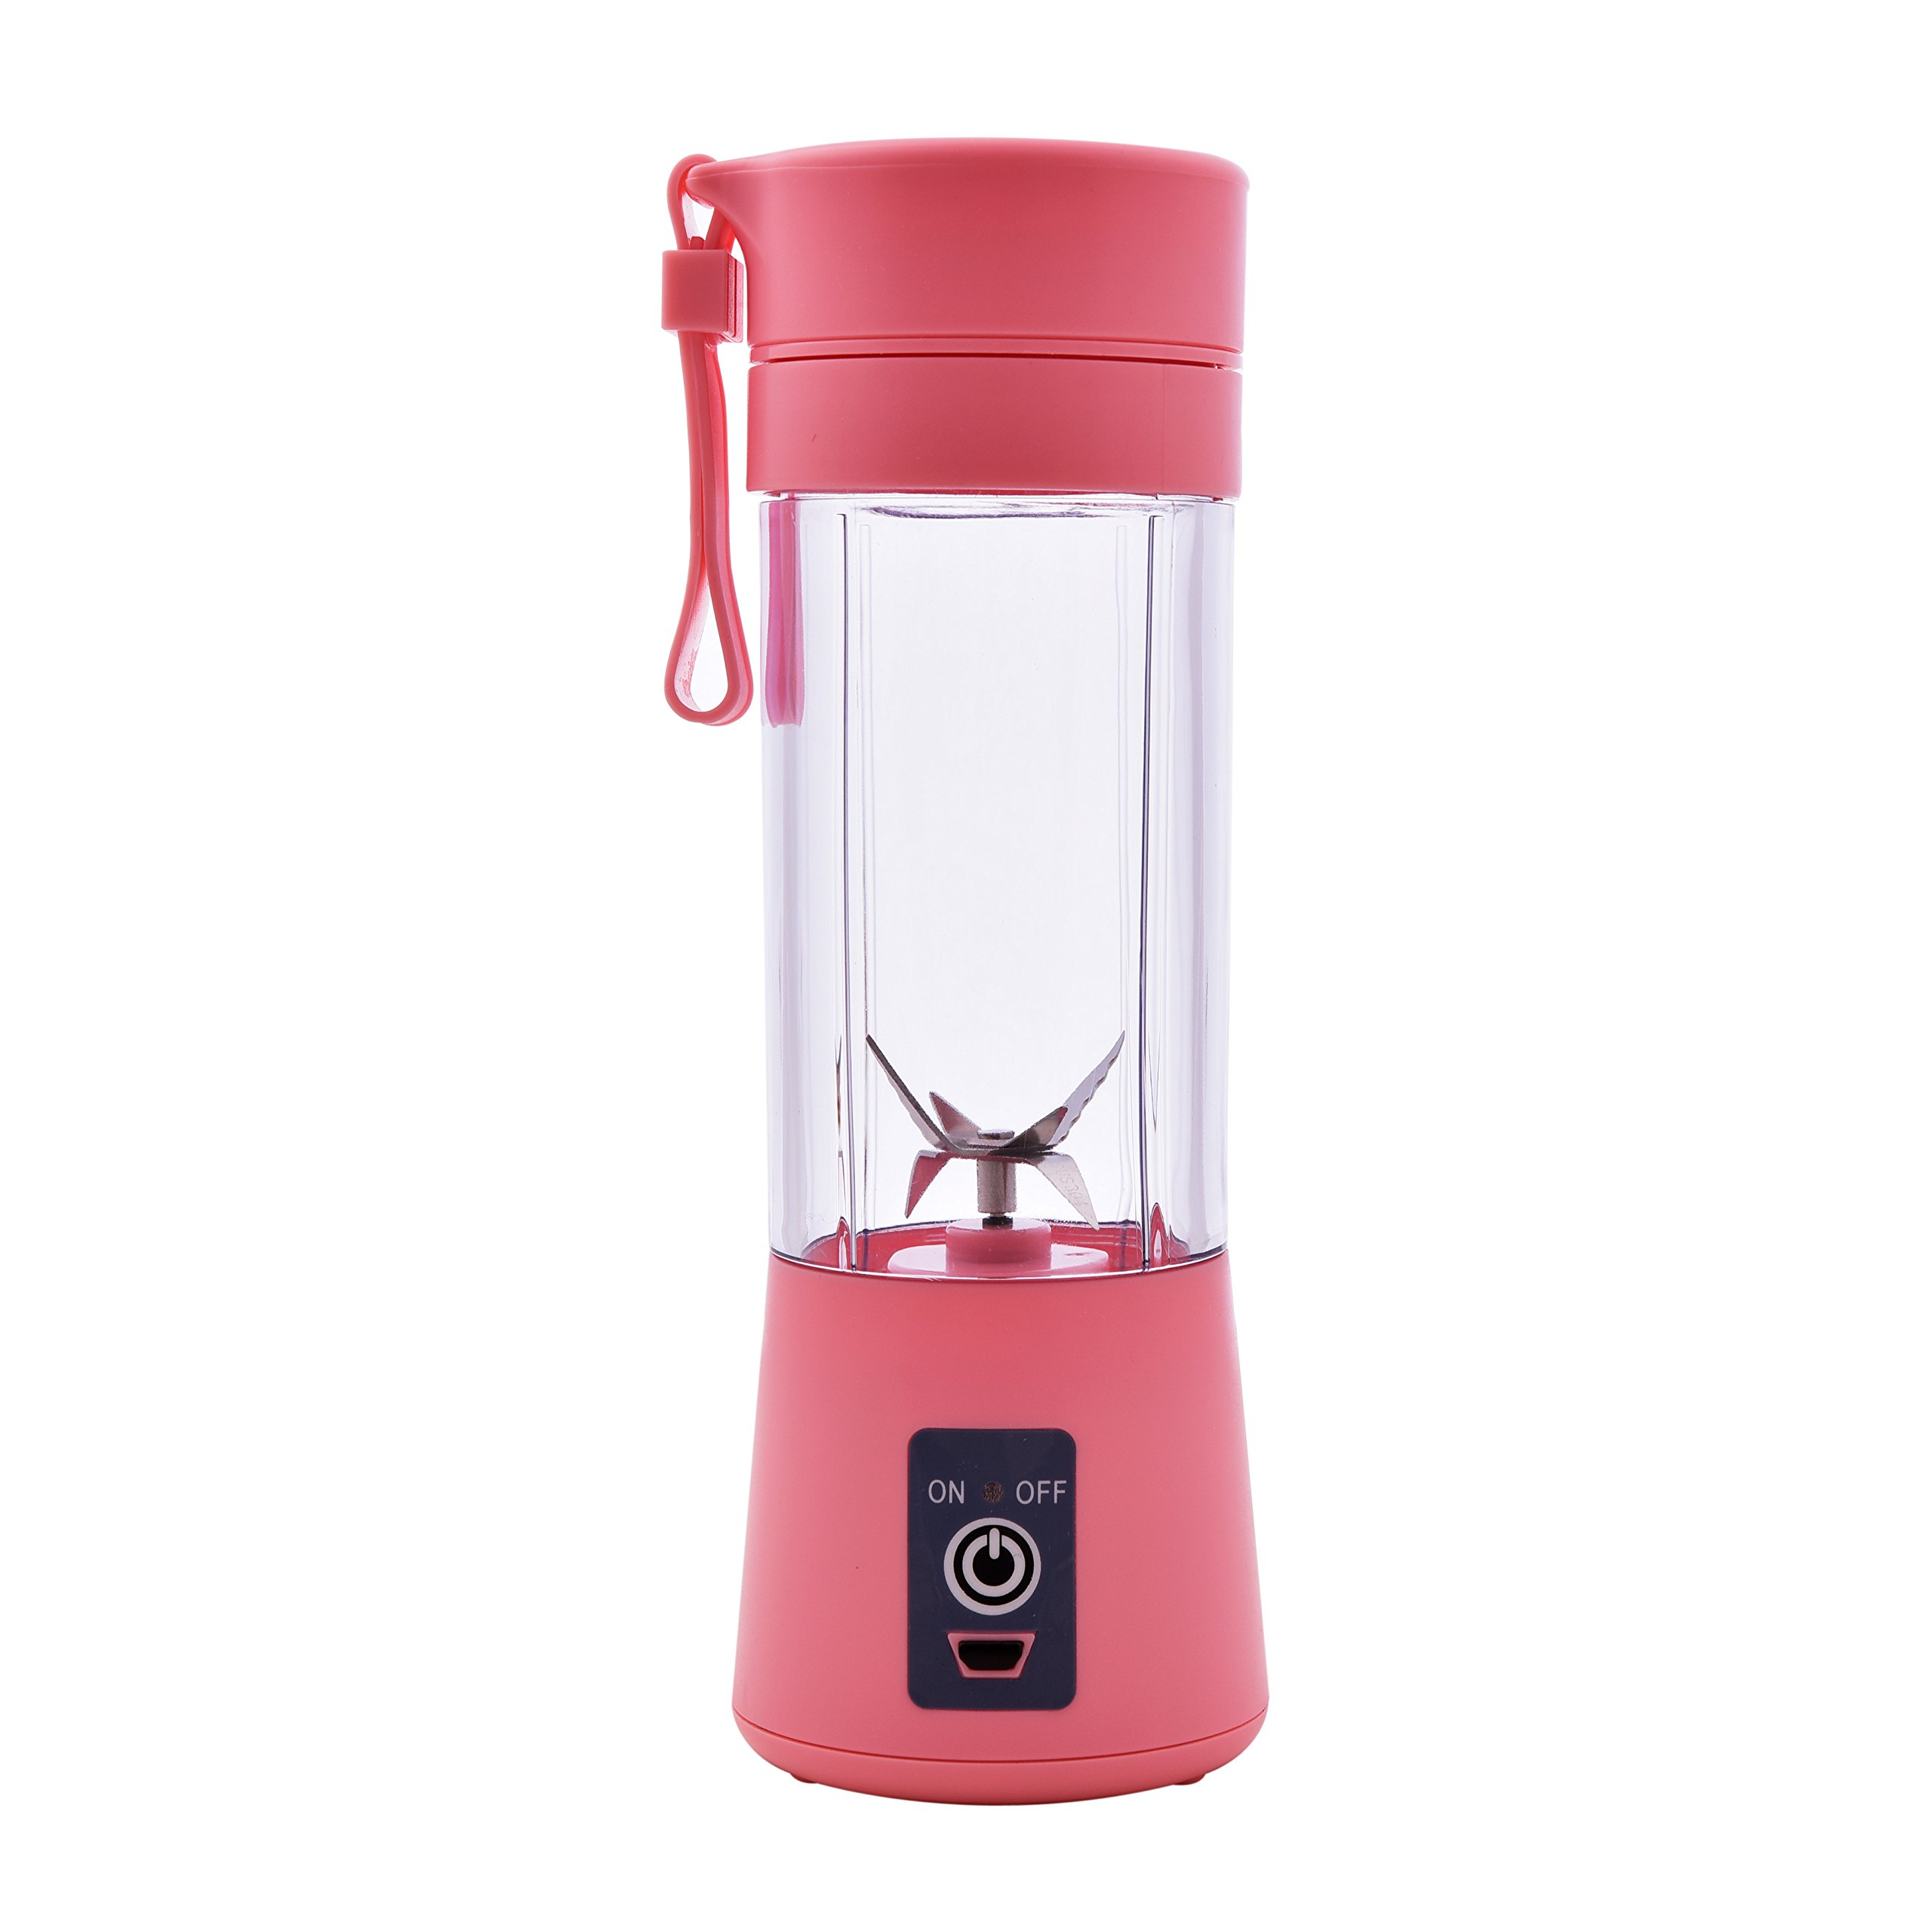 2018 [Upgraded Version] Portable Juicer Cup Personal Size Eletric Rechargeable Mixer USB Juice Blender 380ml 6 Blades in 3D for Superb mixing for Traveling Working Outdoors (pink)